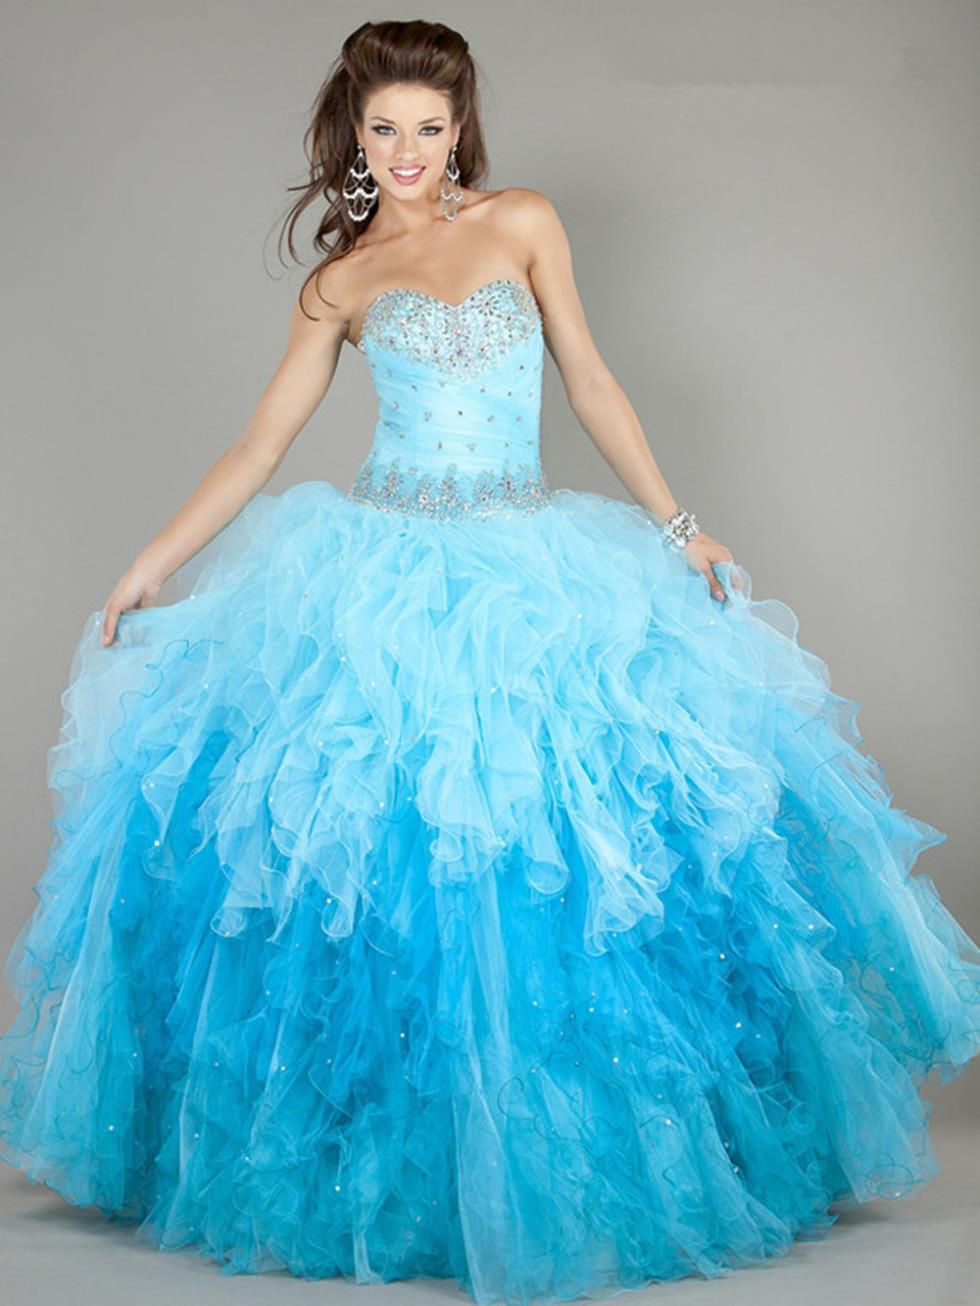 Free Shipping 2019 Beading Crystal Brand New Blue Prom Ball Gown Formal Party Evening Quinceanera Mother Of The Bride Dresses